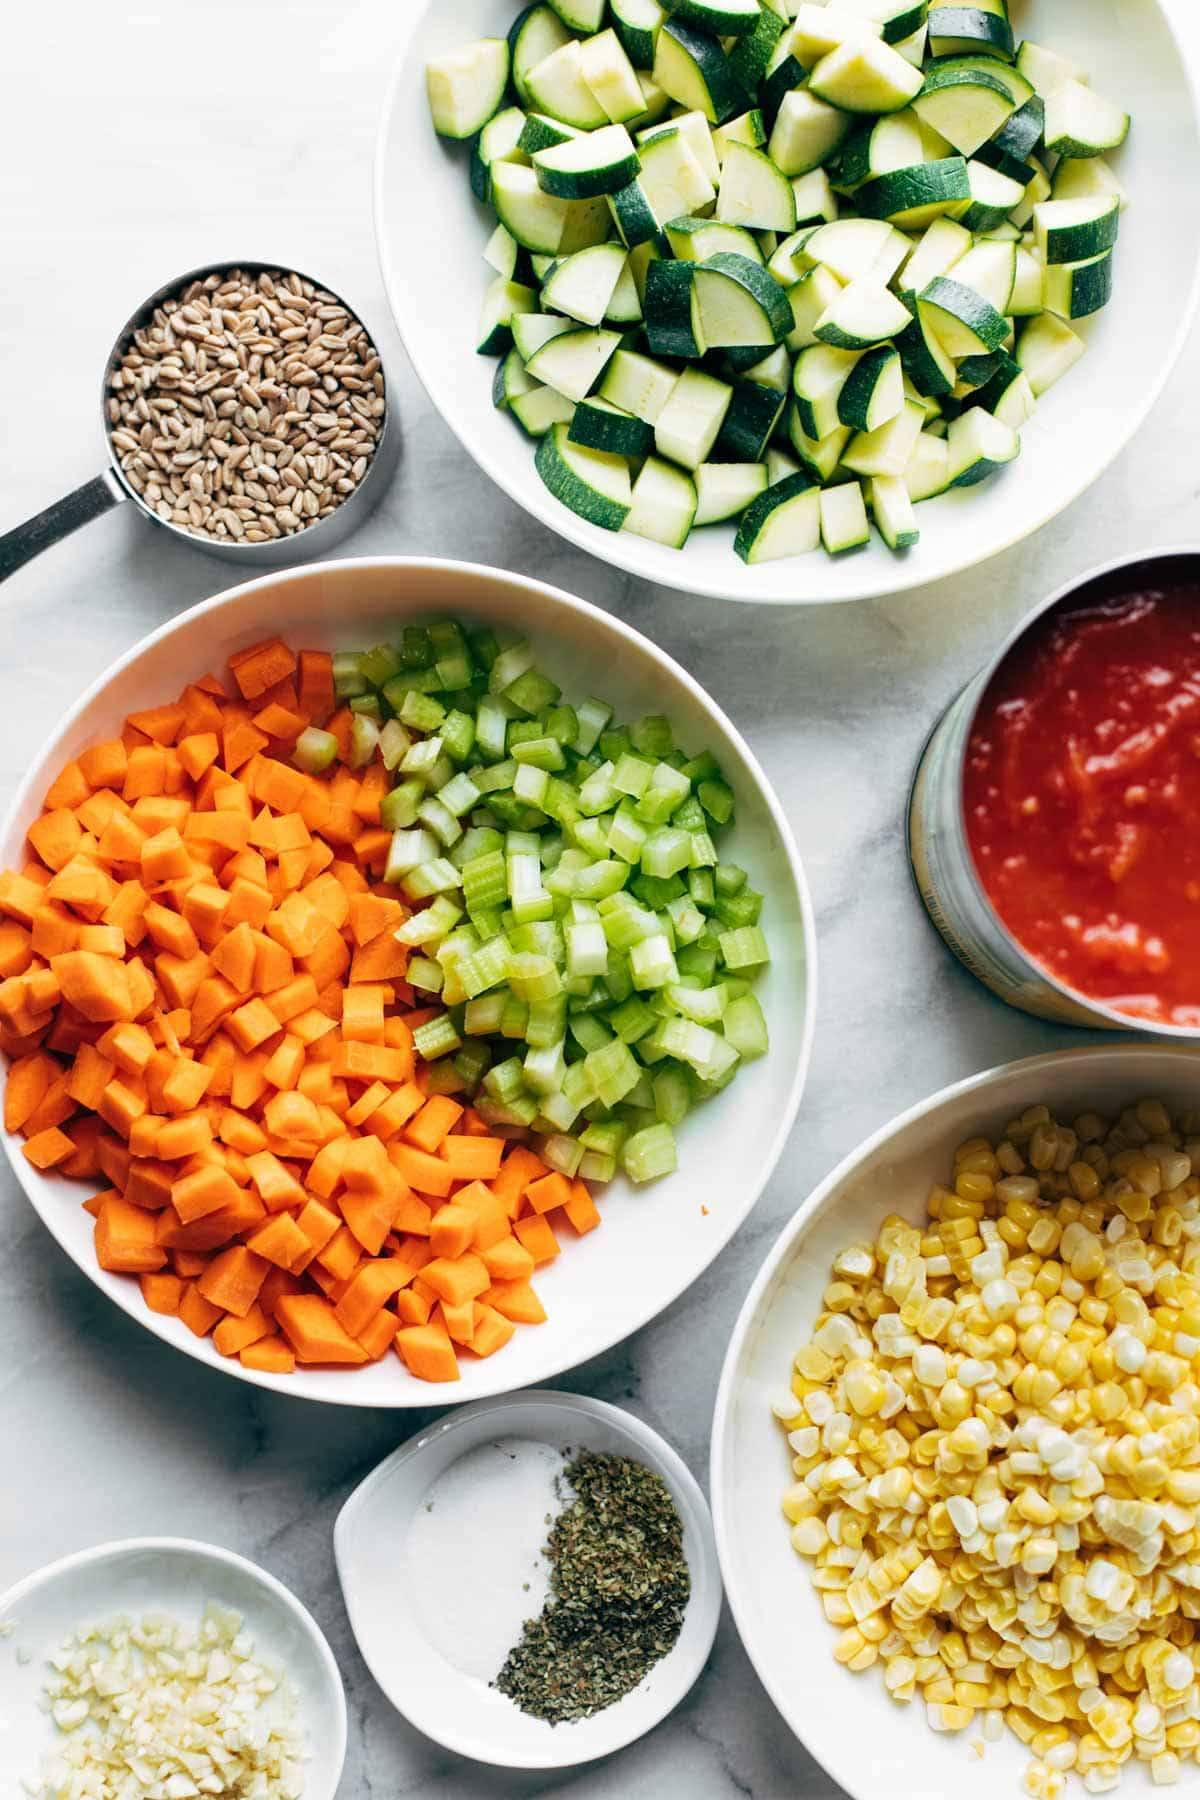 Ingredients in bowls for Instant Pot Summer Soup.